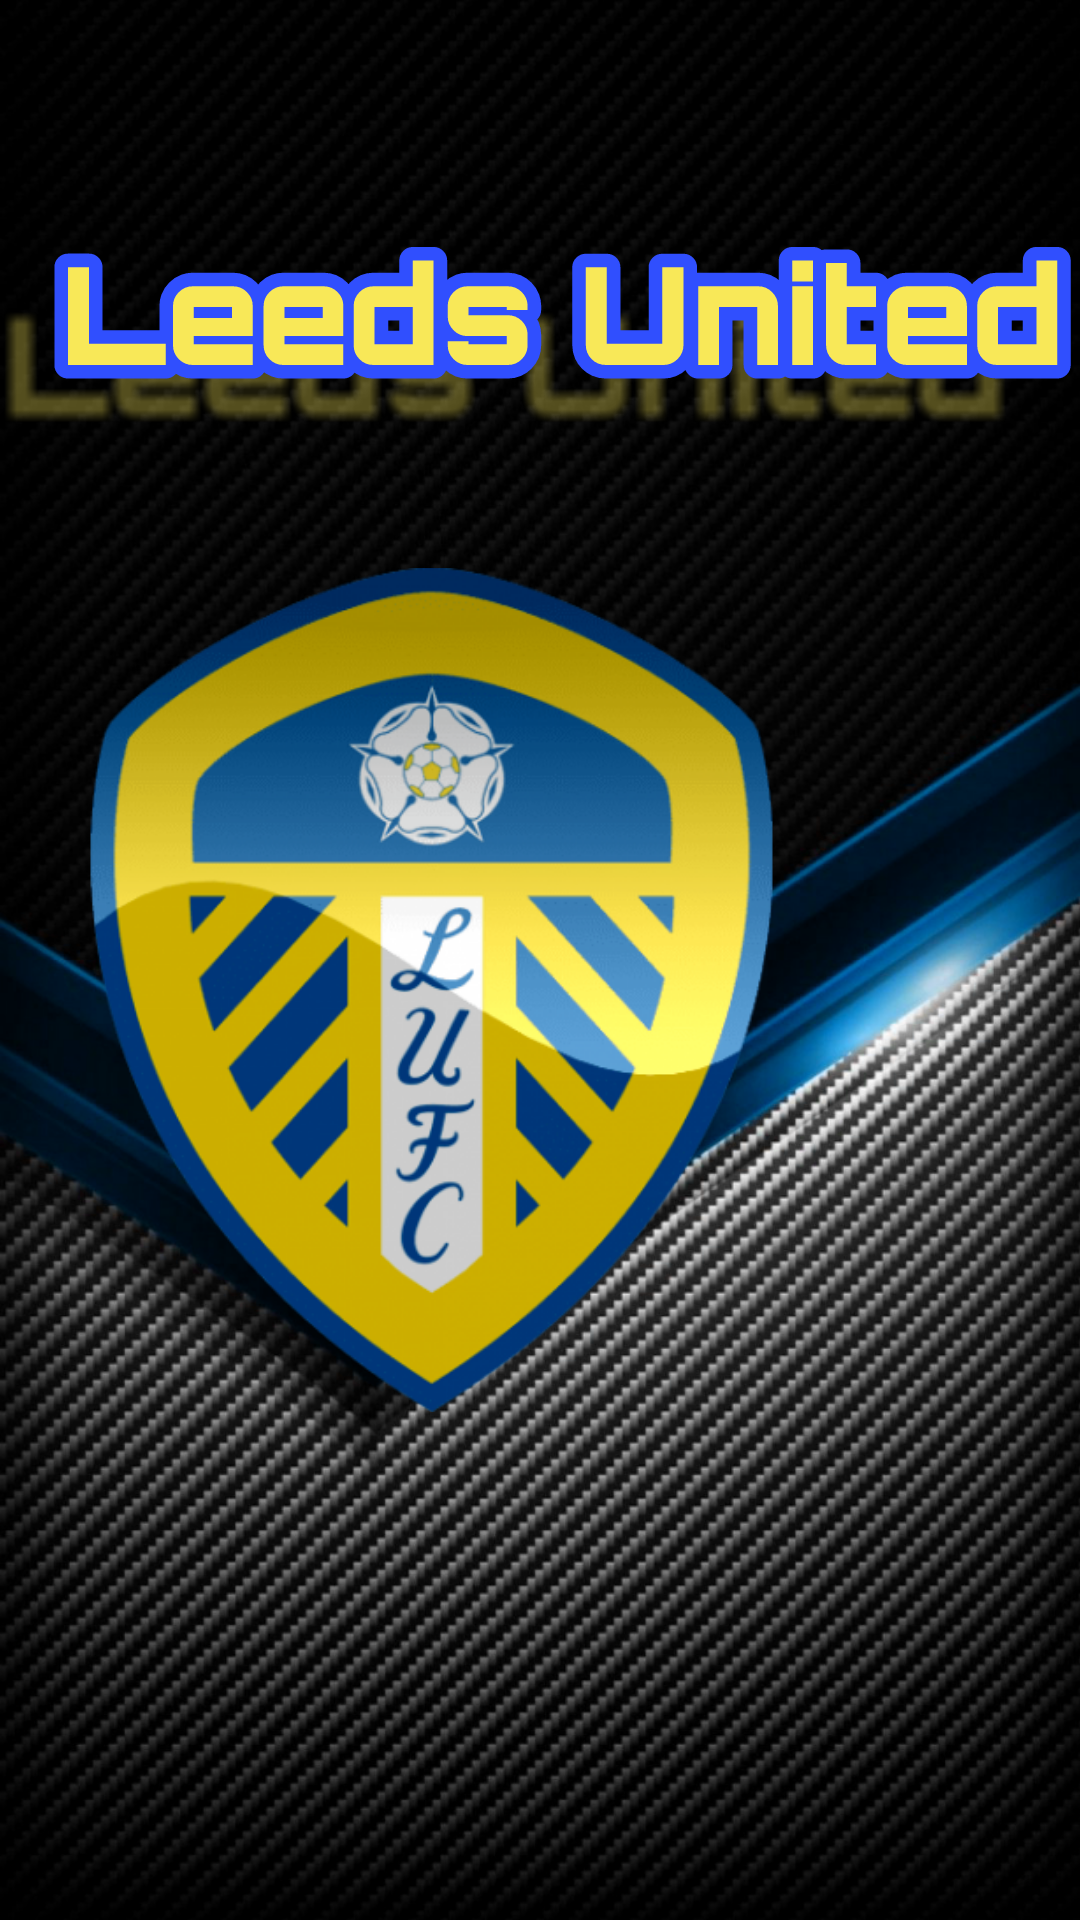 Leeds United Leeds United Leeds United Football Leeds United Wallpaper